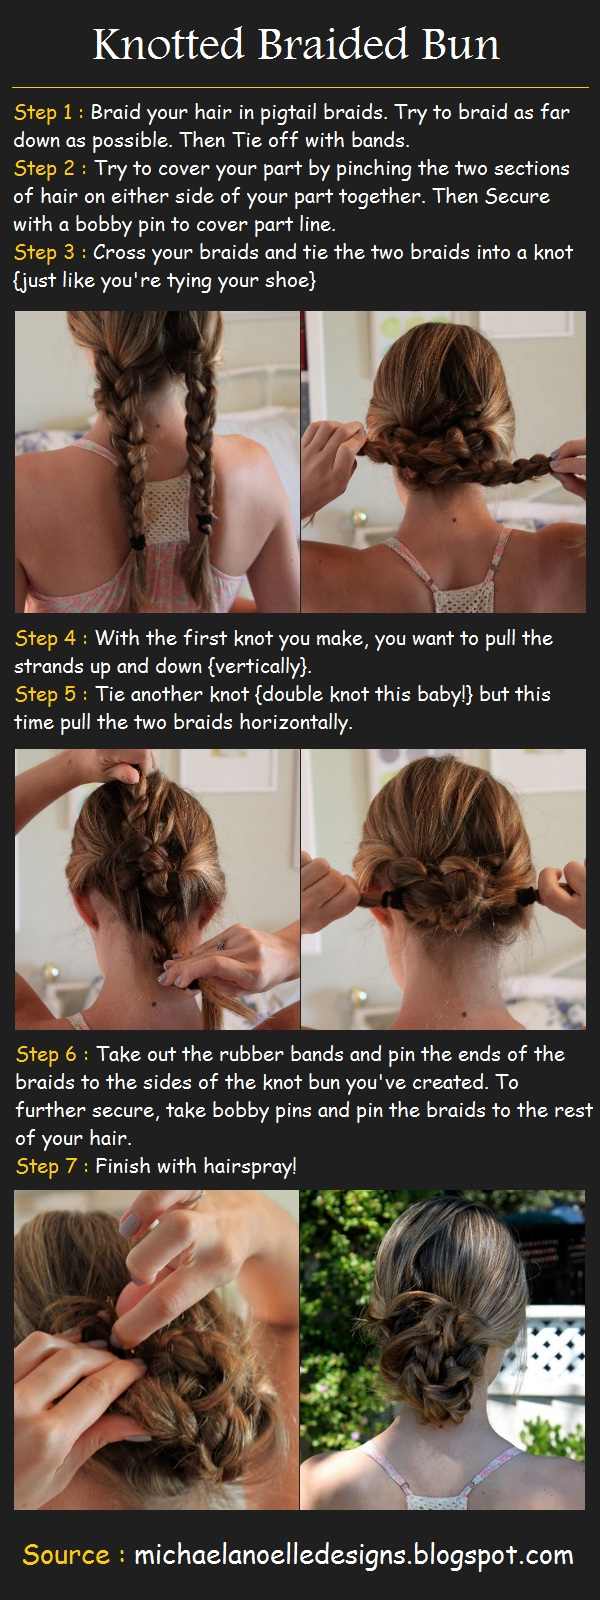 How to do a Knotted Braided Bun